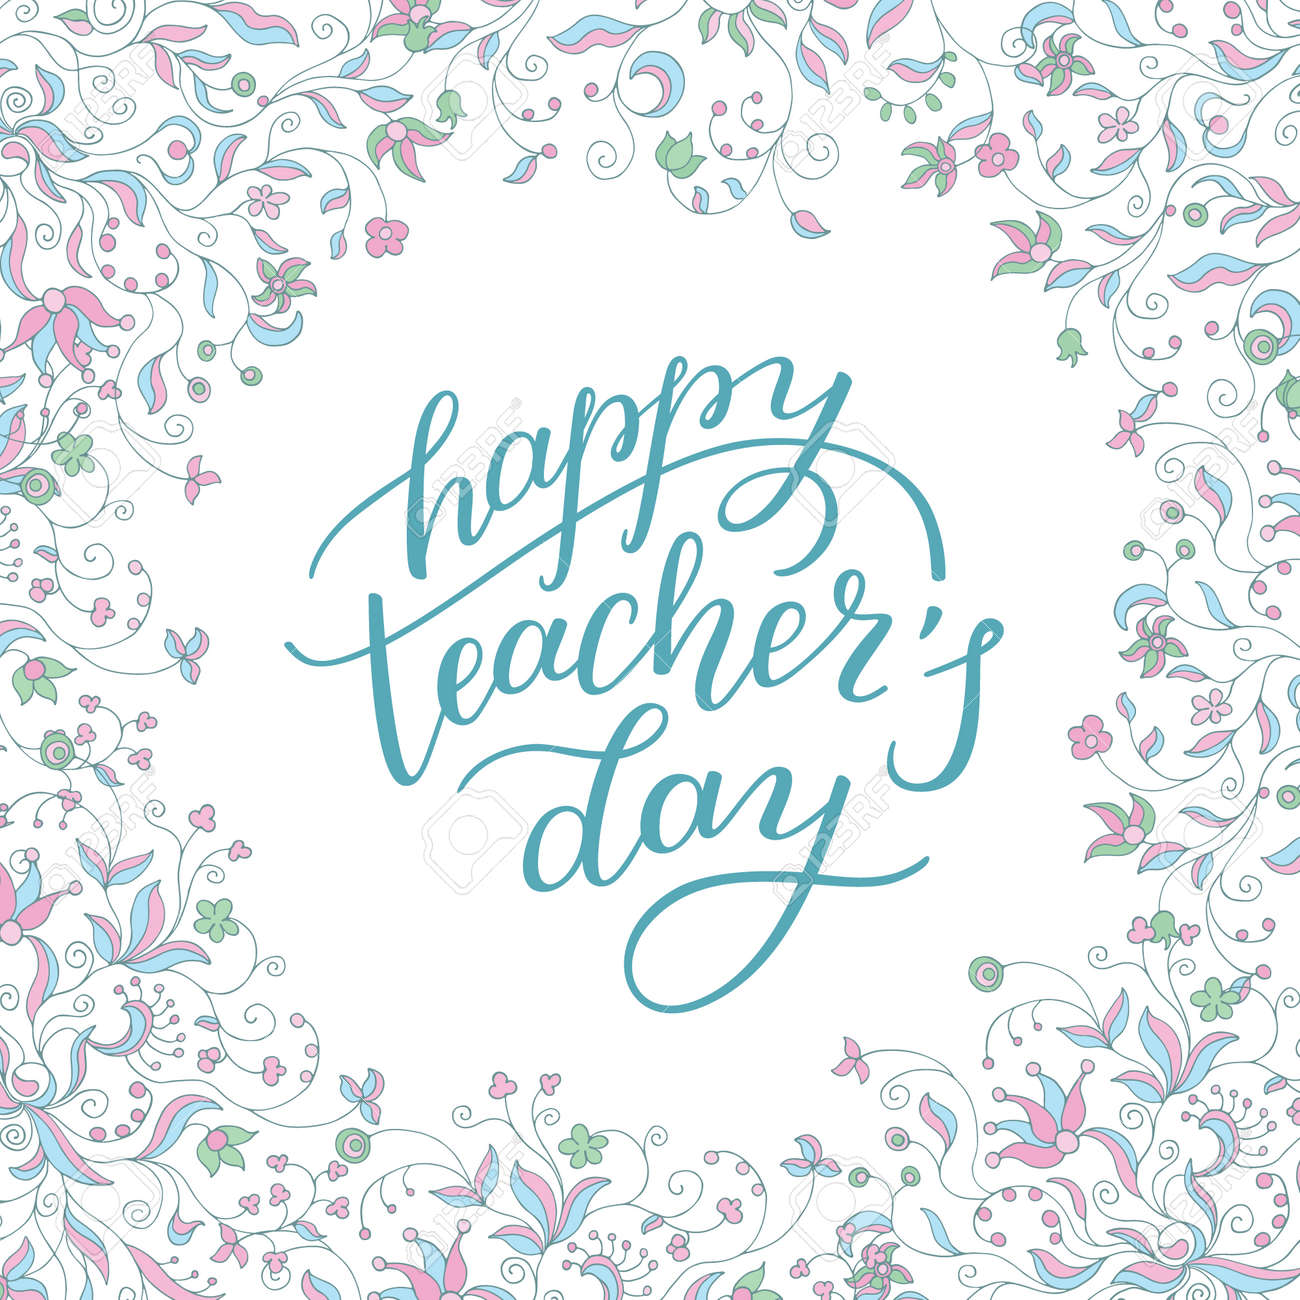 Happy teachers day hand lettering with flower frame template happy teachers day hand lettering with flower frame template for greeting card m4hsunfo